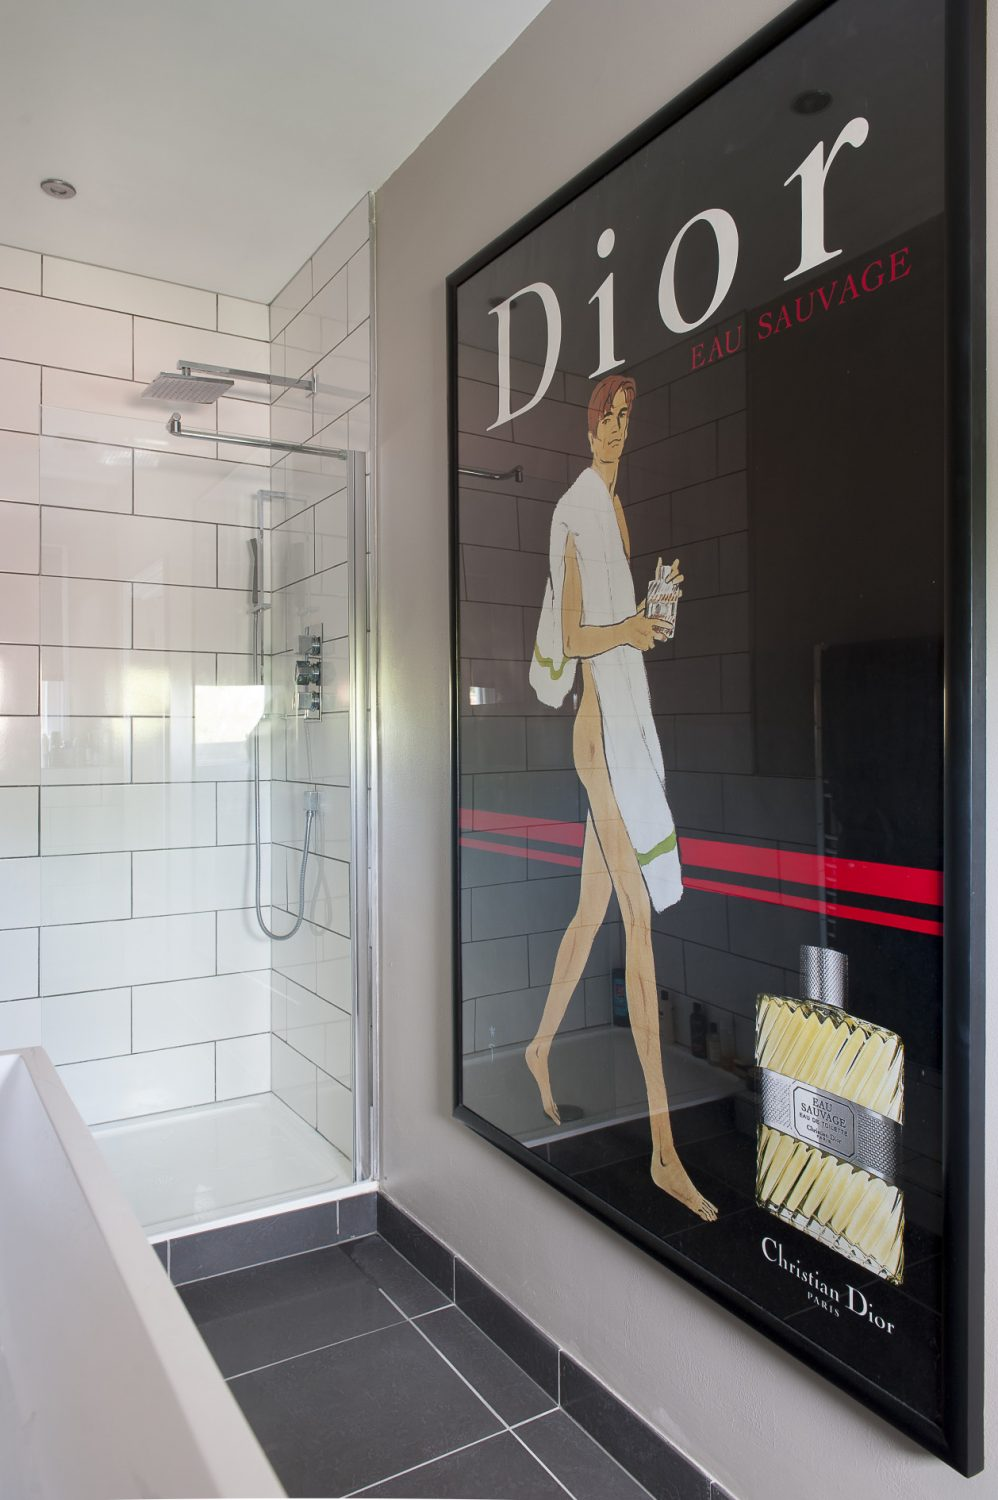 An original Dior poster is all that is needed to decorate the en suite shower room